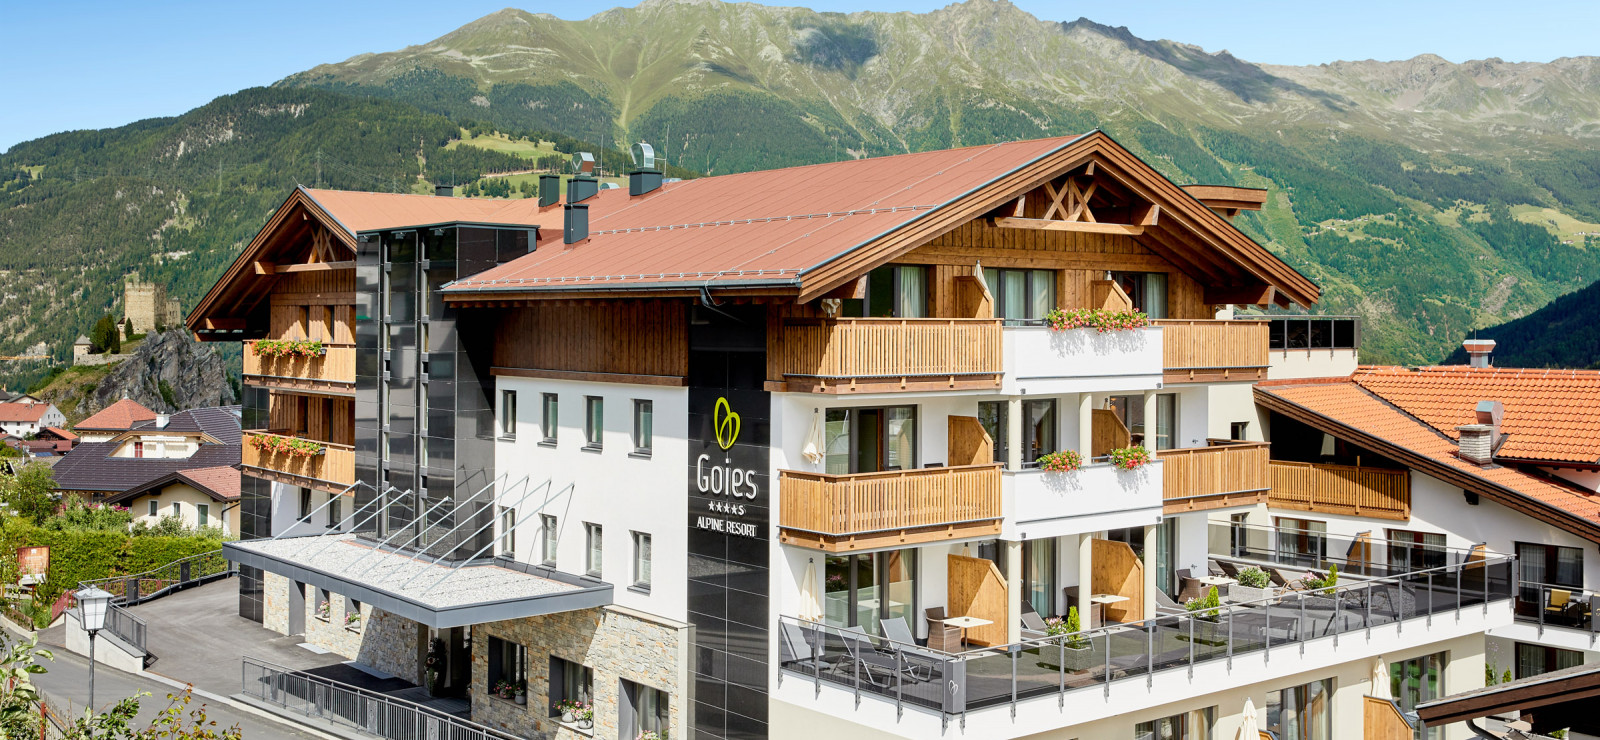 Wellnesshotel Alpine Hotel Resort Goies | Ladis